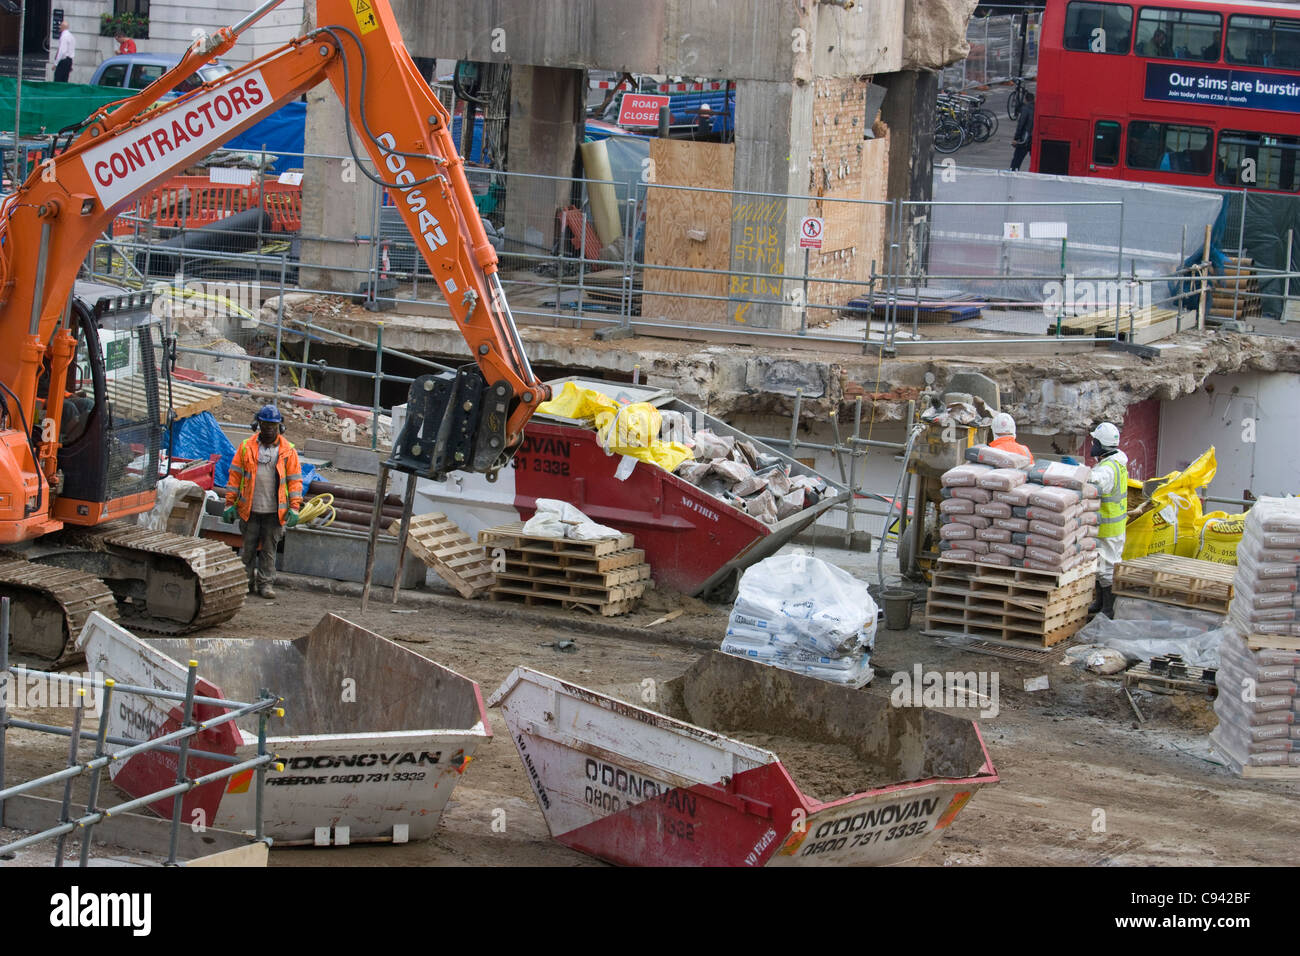 crossrail moorgate demolition works - Stock Image